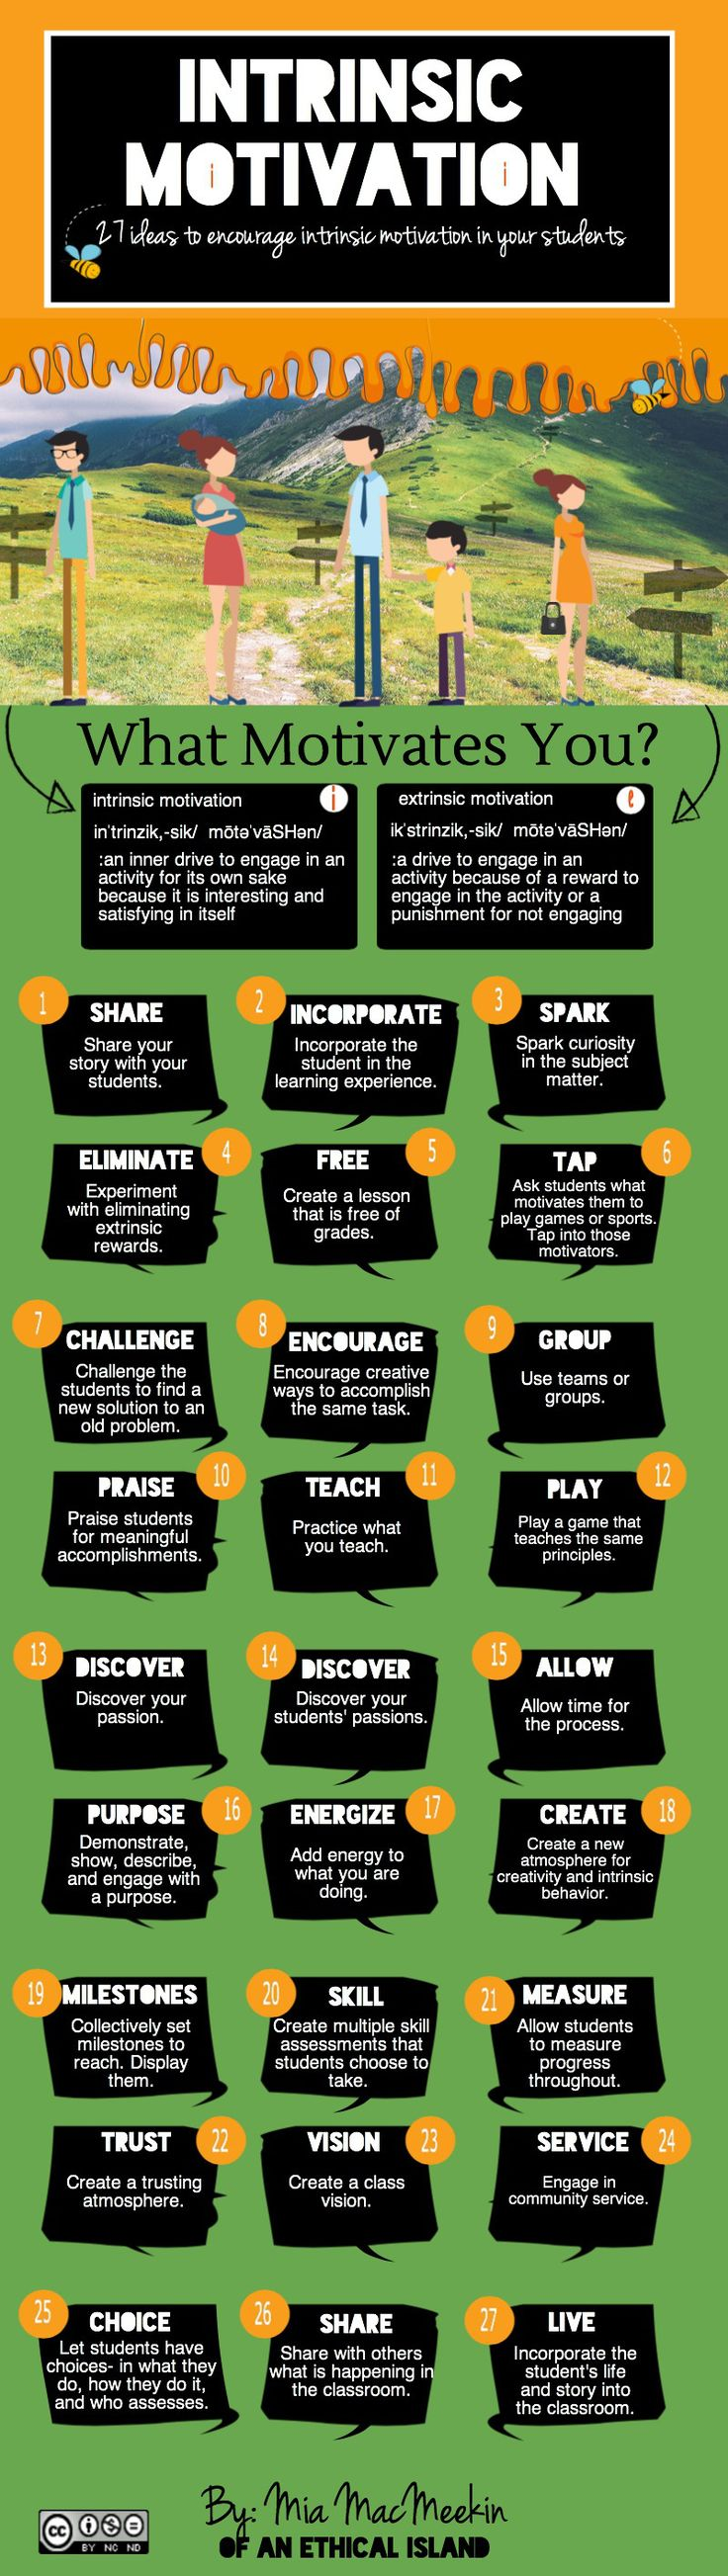 Help create a classroom that encourages intrinsic motivation by allowing your students the freedom to learn about themselves and you.